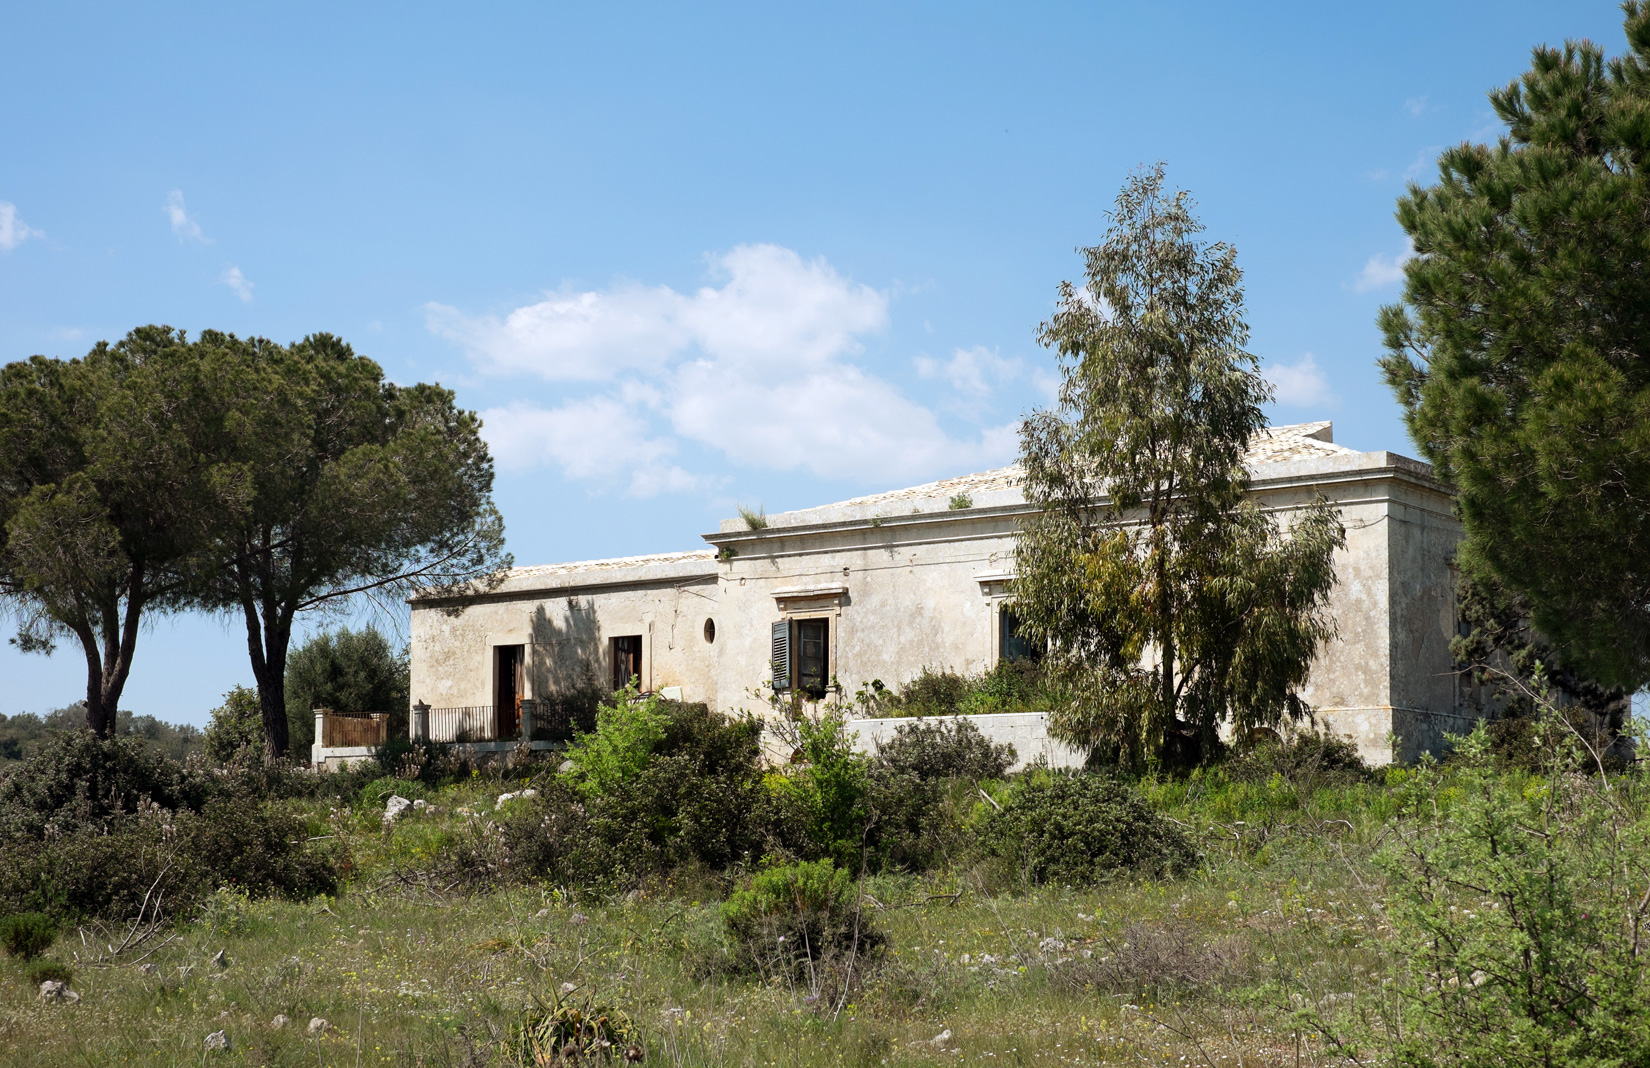 Gorgeous Sicilian Estate In Need Of Tlc Lists For 850k